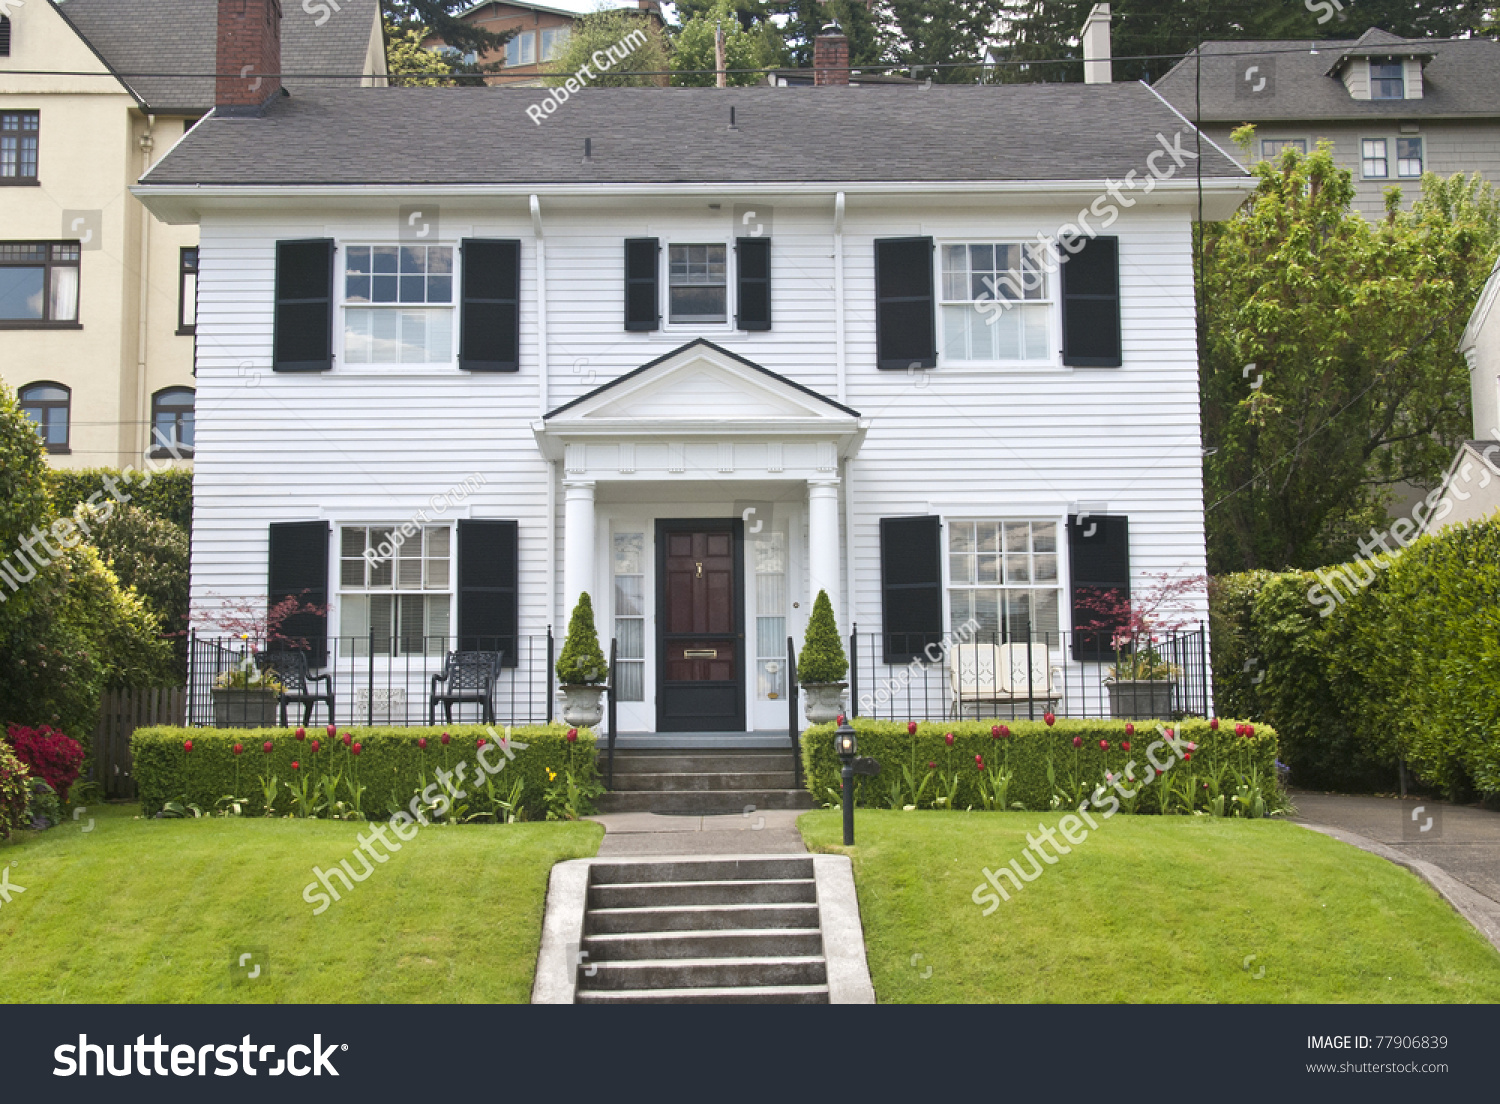 Classic american wooden clapboard house stock photo for Classic american house